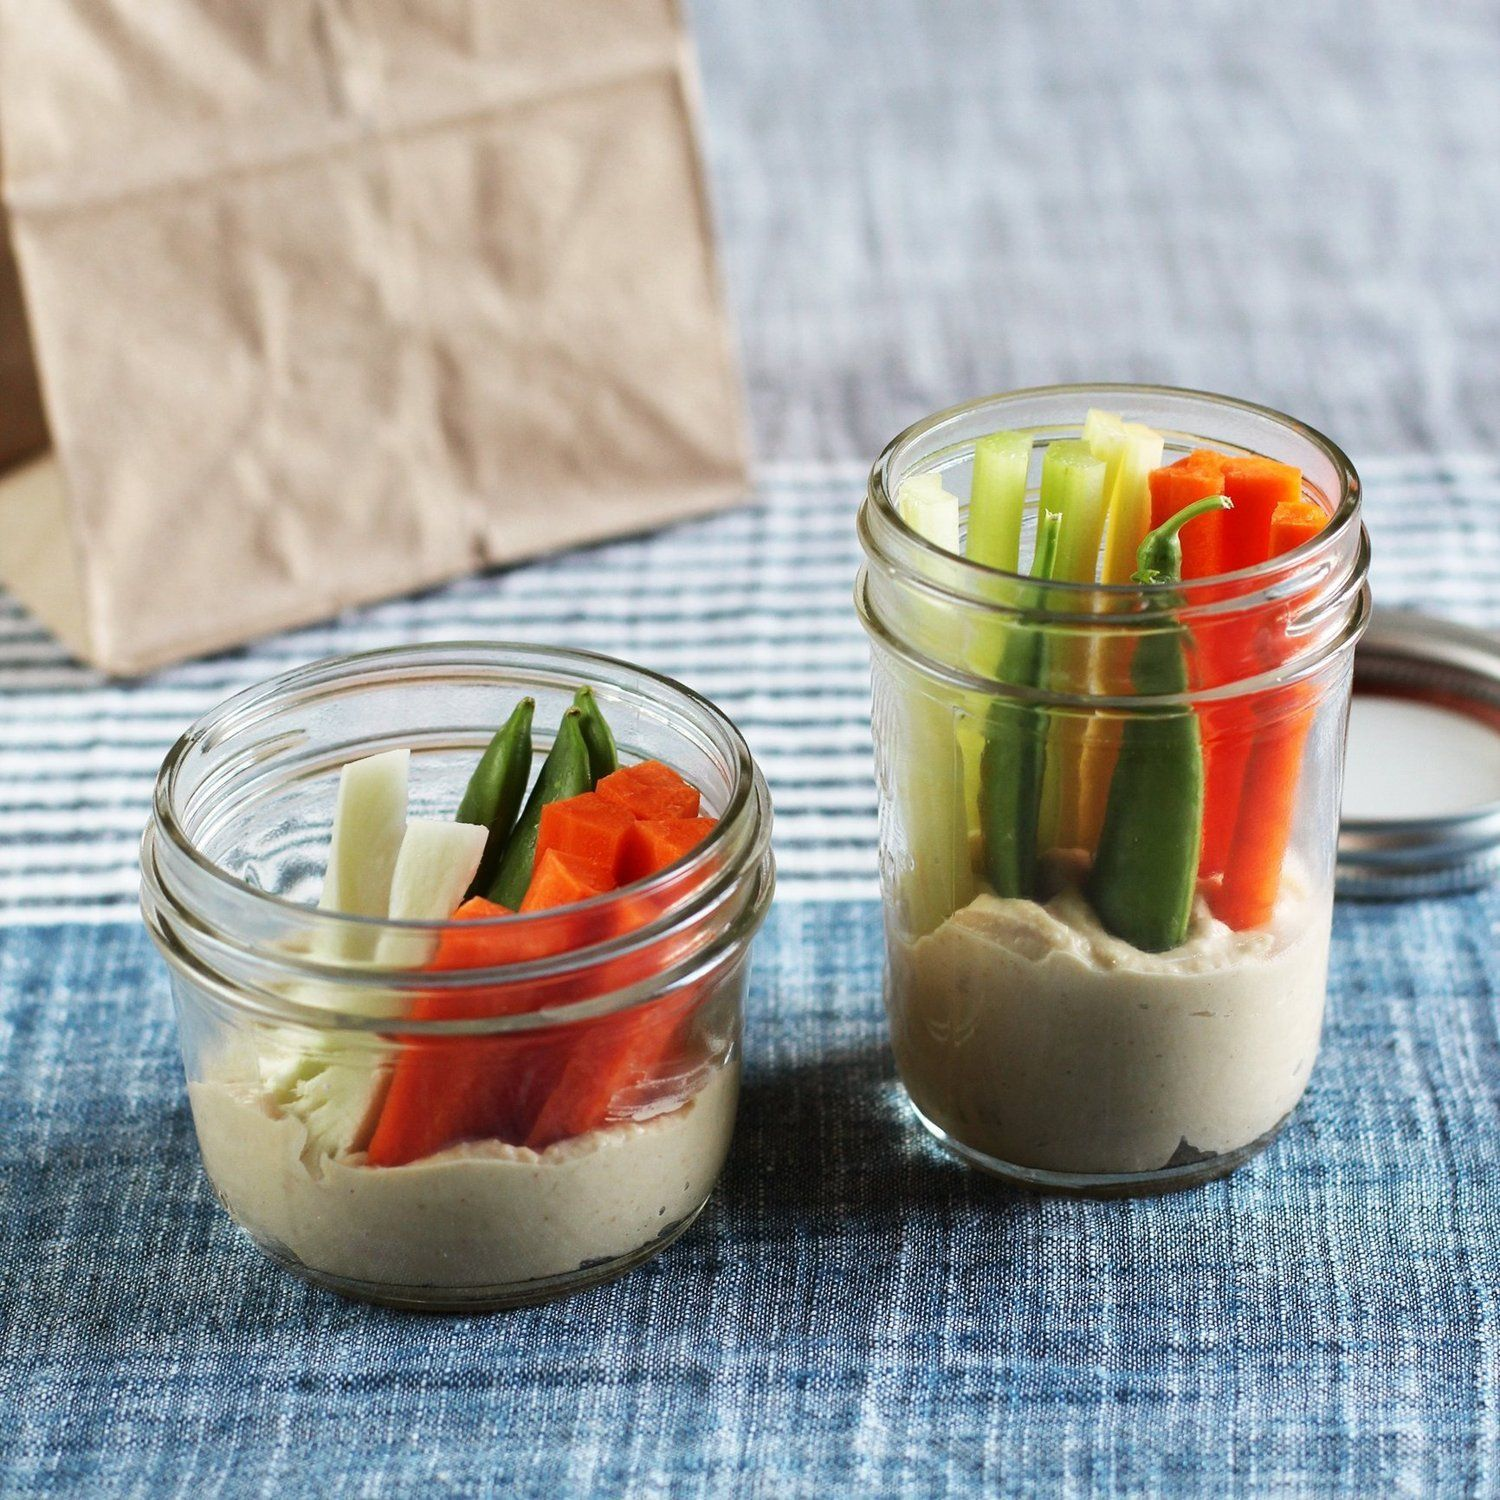 Smart Snacking:  Pack Veggies & Dip Together in a Jar   Tips from The Kitchn... More dip ideas in comments!